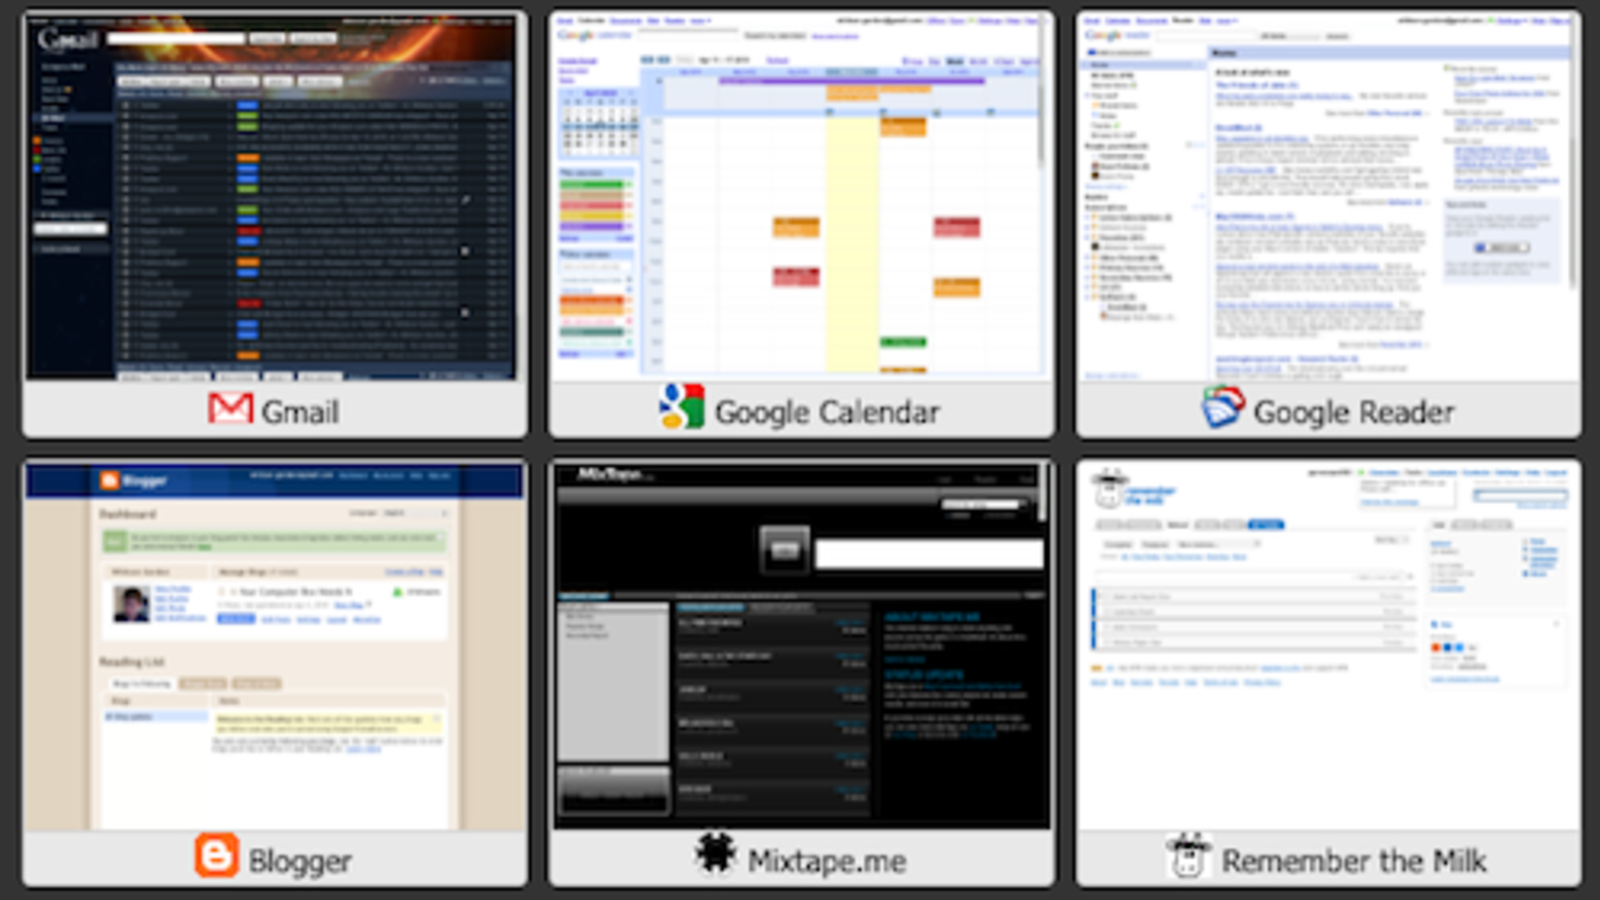 Ditch Desktop Apps For Webapps, Free Up Ram, And Enjoy The inside Google Calendar Alerts Vs Desktop Notifications